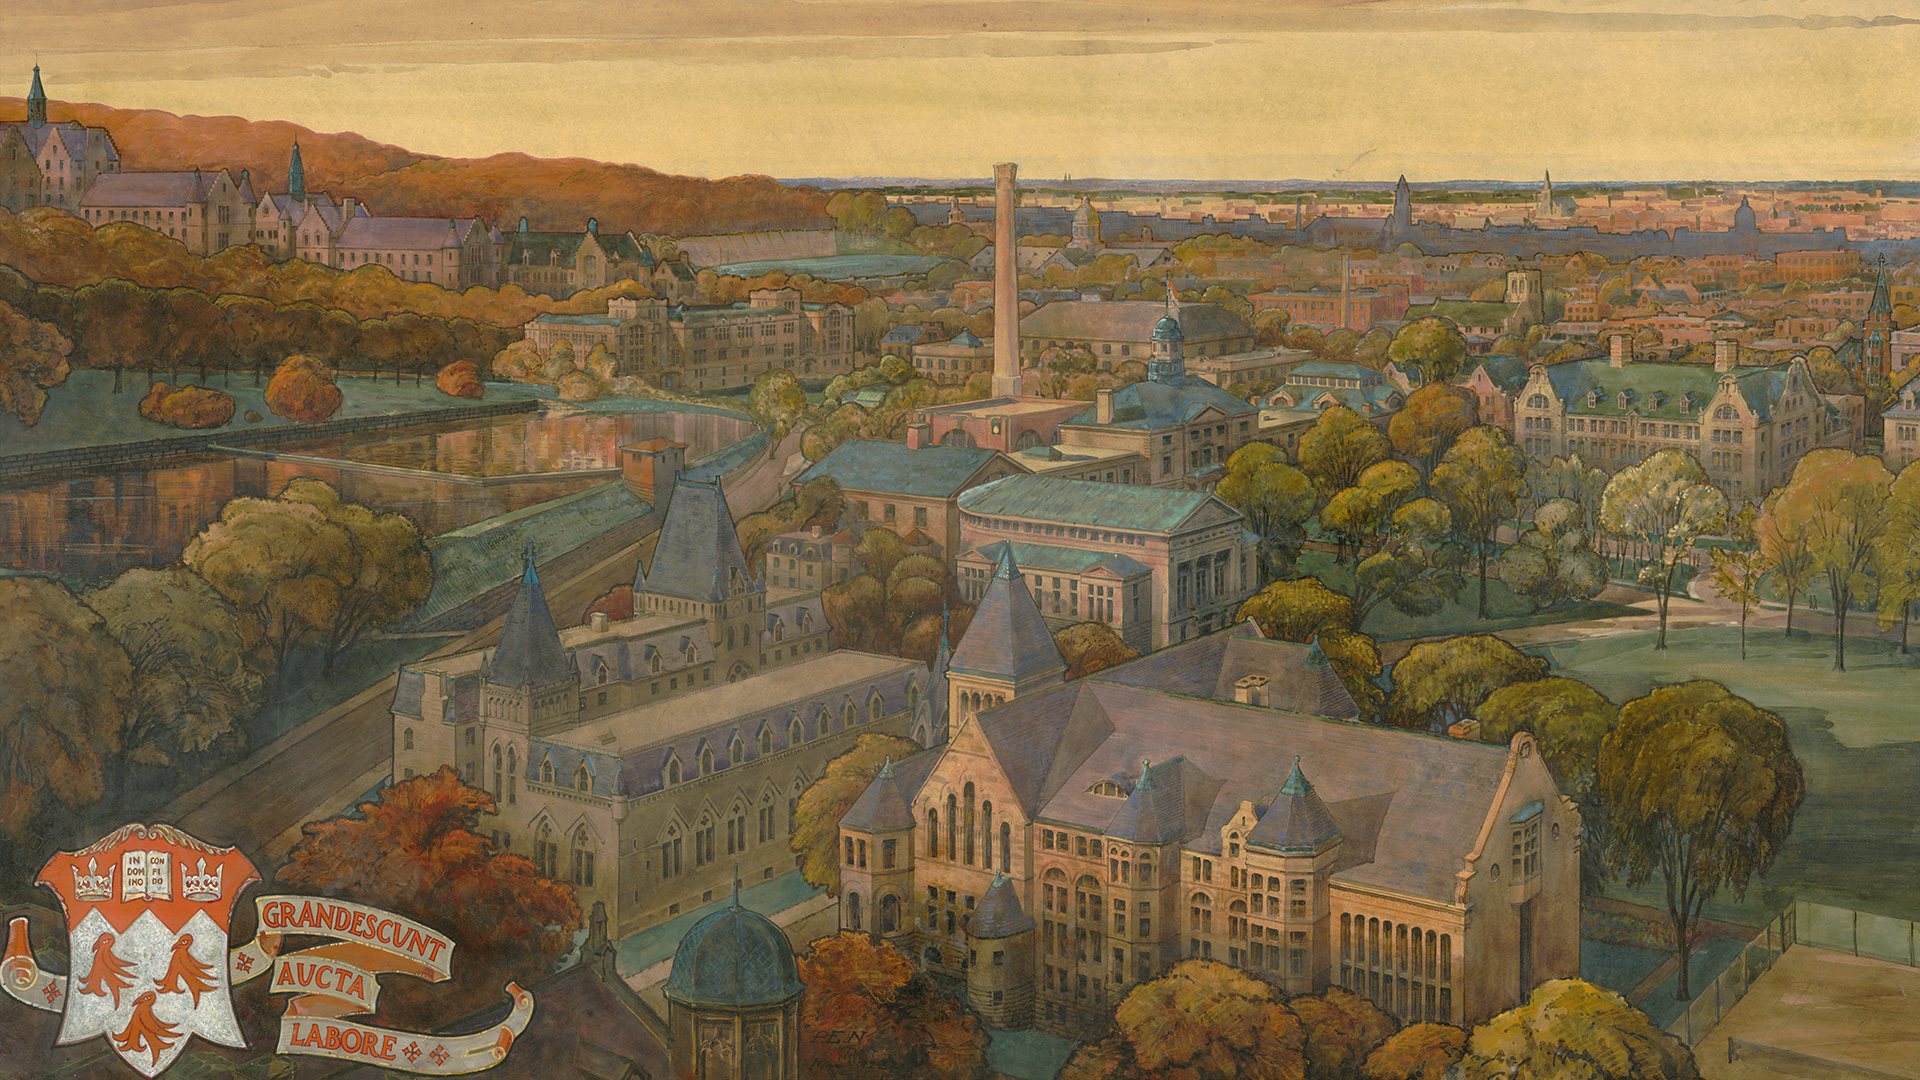 Bird's-Eye View of McGill University. Watercolour by Percy E. Nobbs, 1925. John Bland Canadian Architecture Collection. Rare Books & Special Collections.